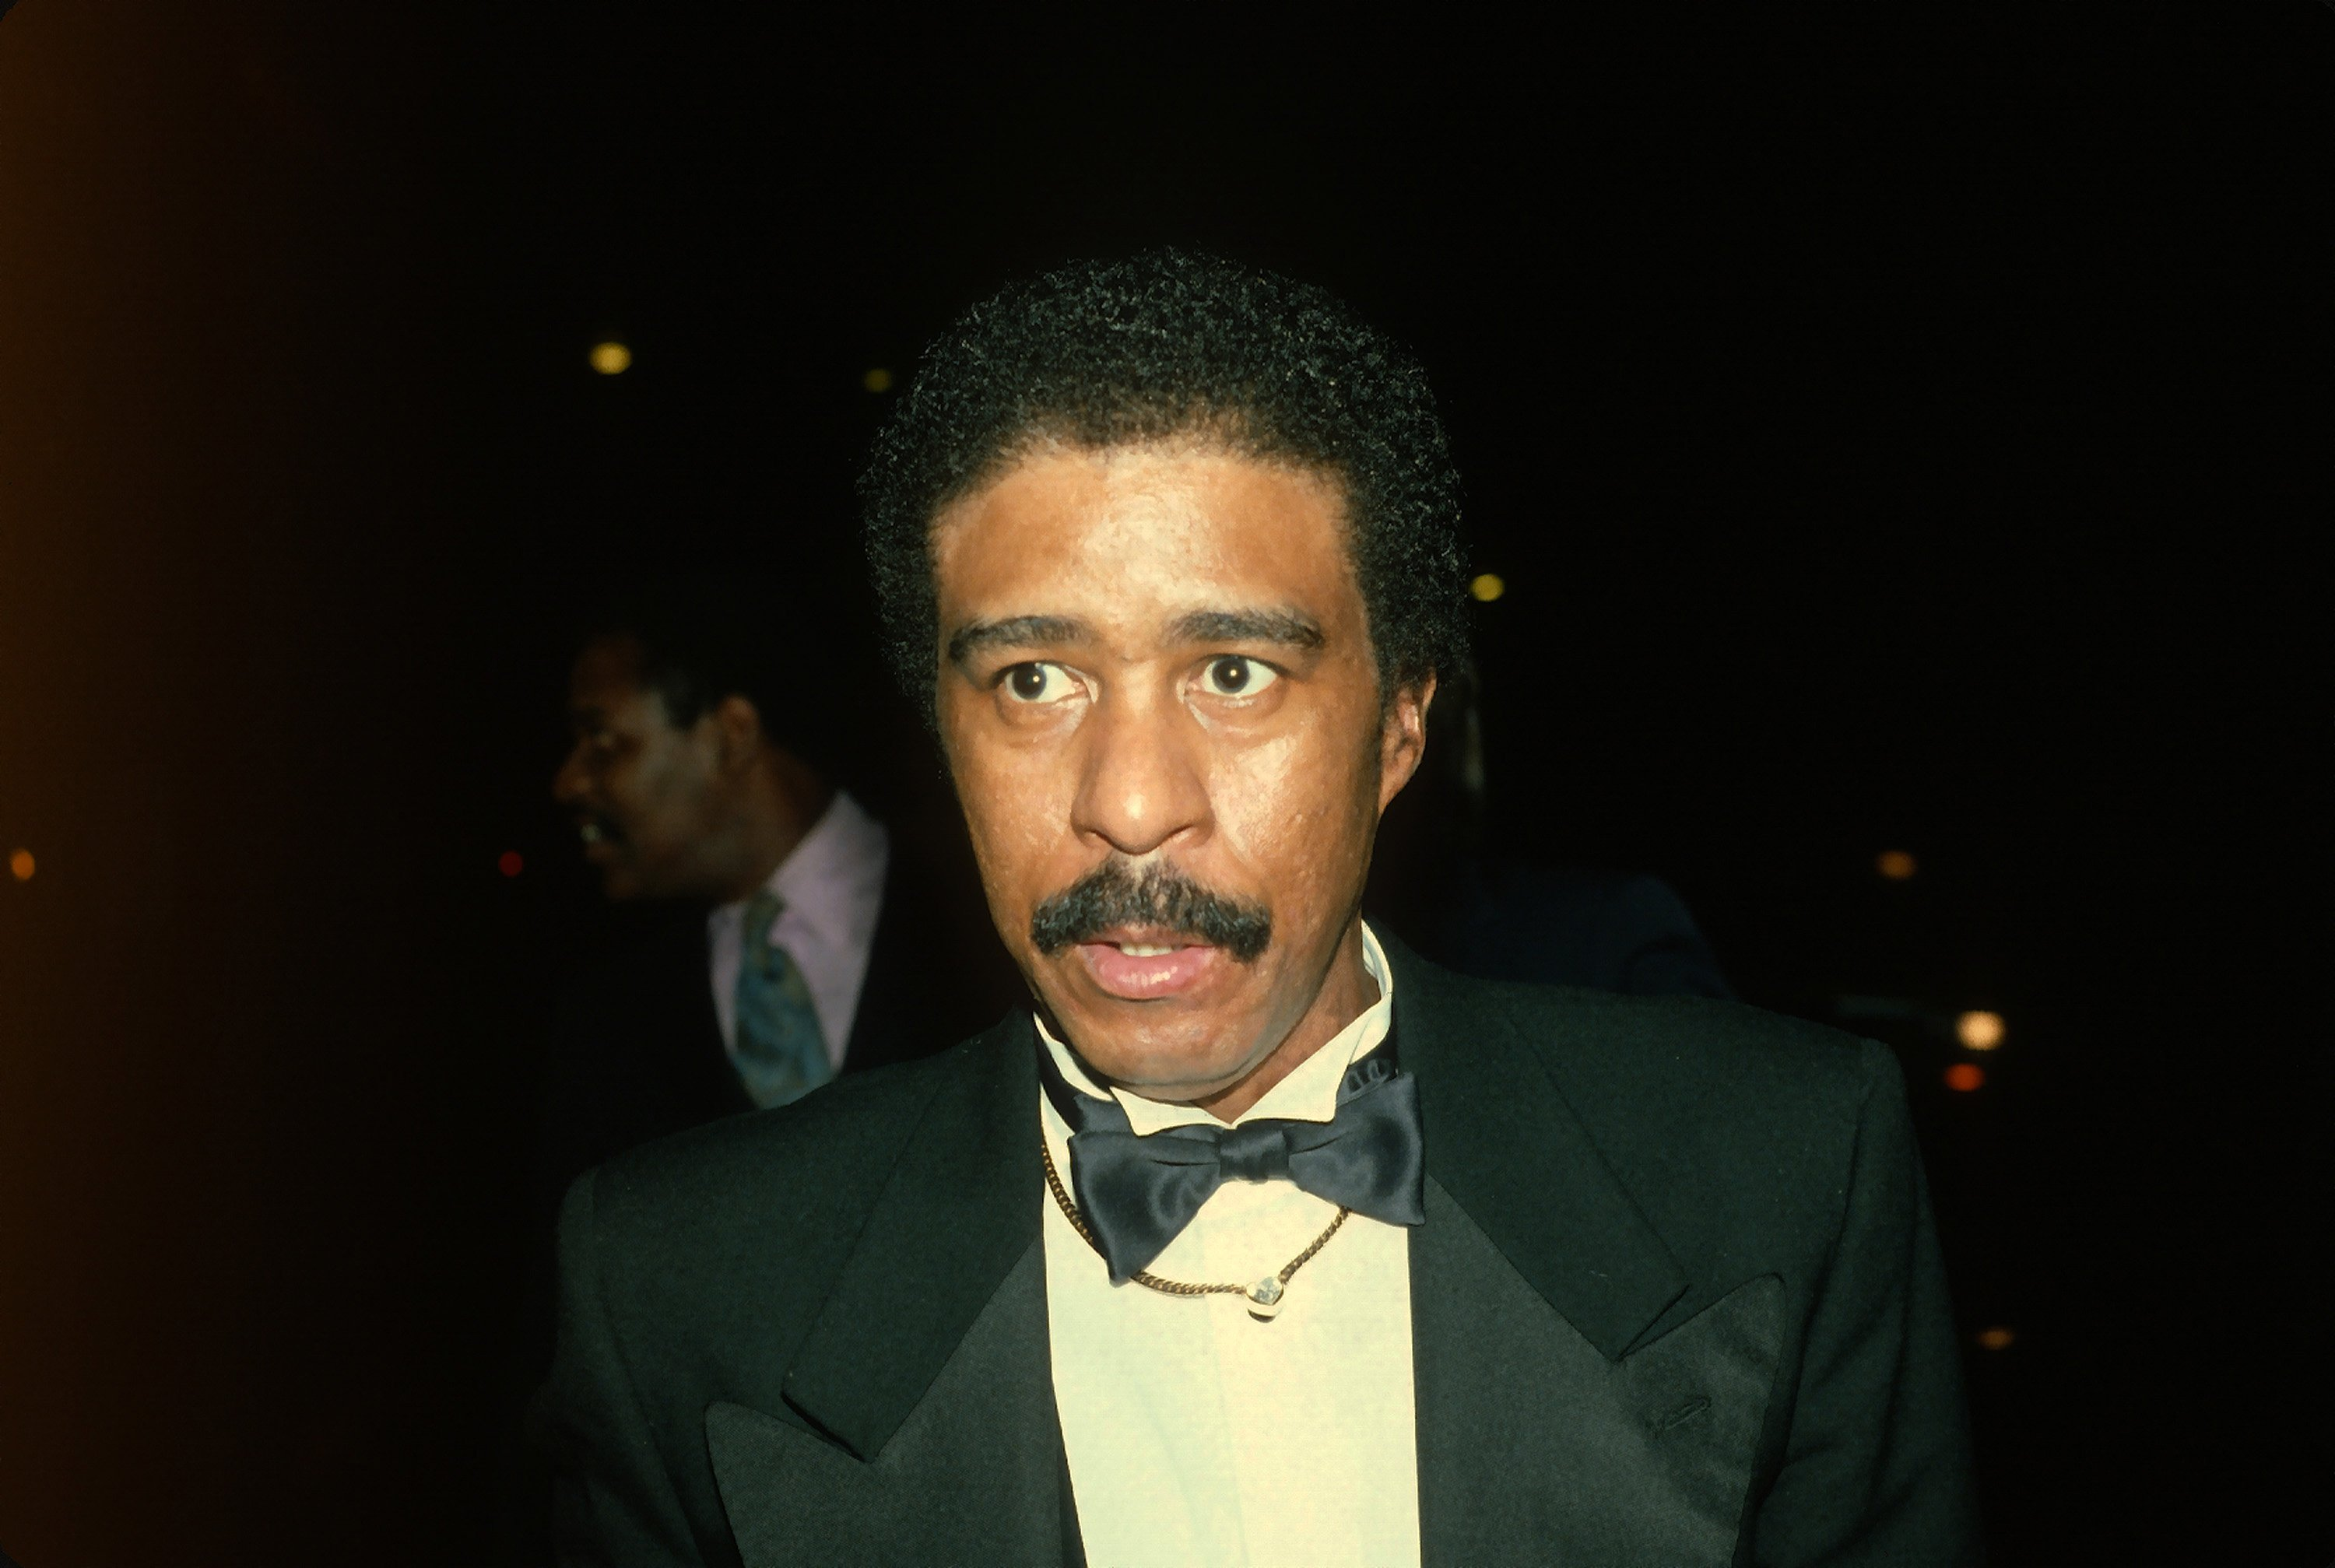 Richard Pryor is photographed at 'Night of 100 Stars' event in New York City March 8, 1982. | Photo: Getty Images